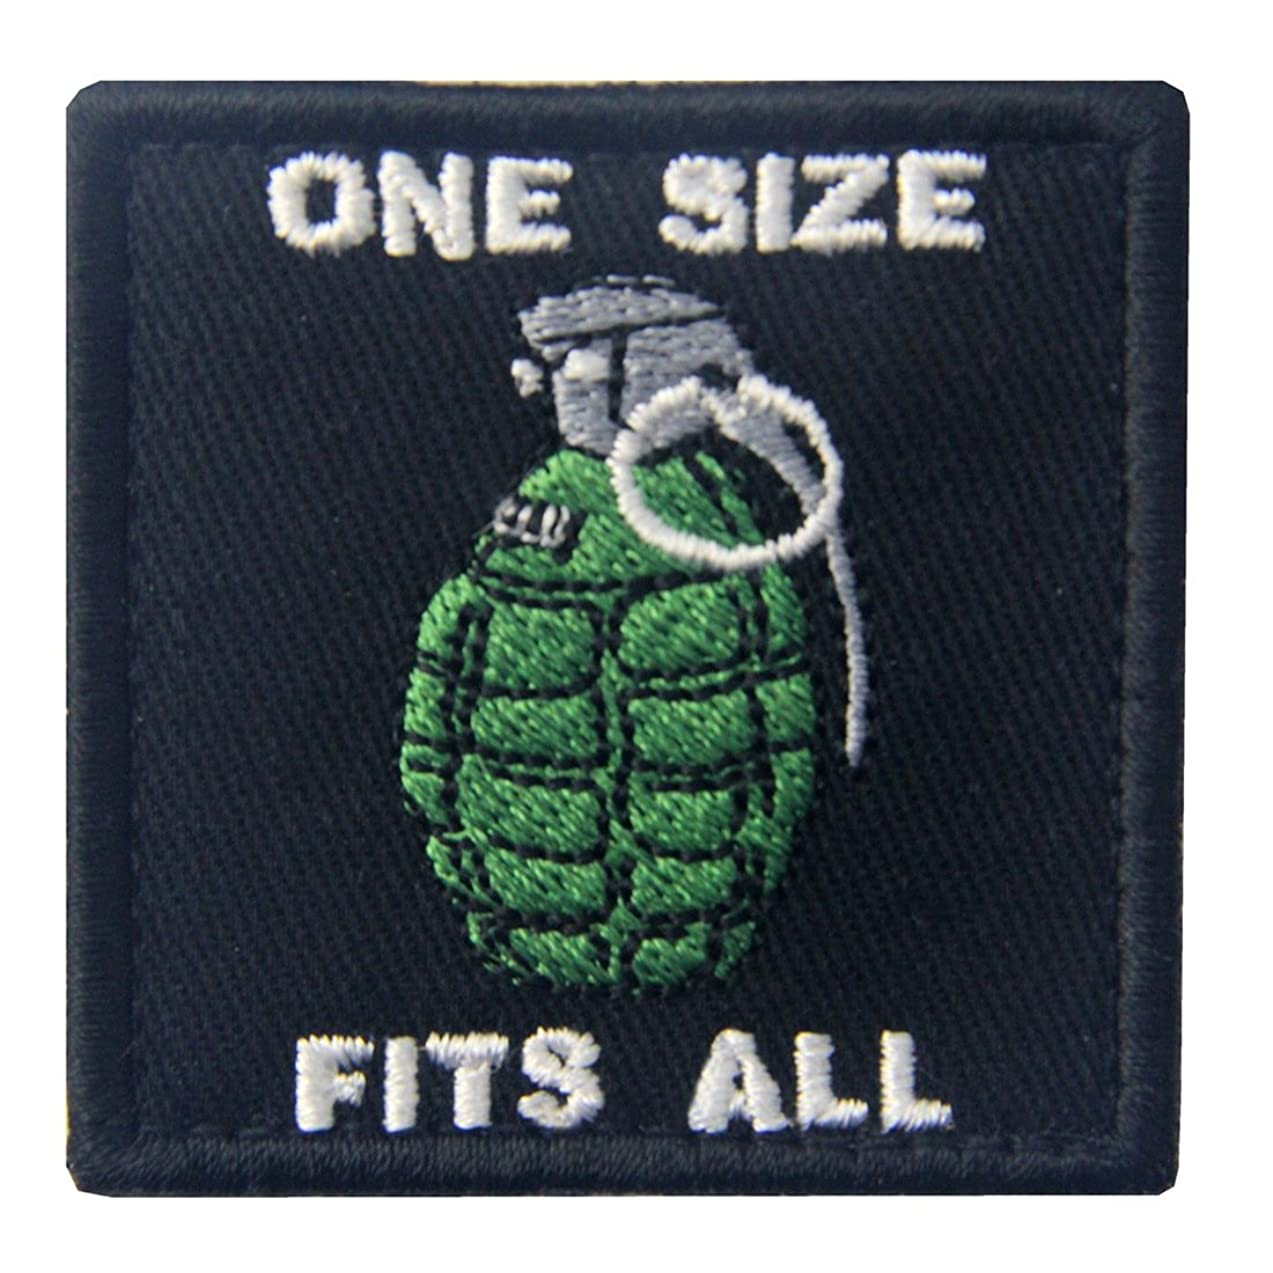 Tactical One Size Fits All Hand Grenade Embroidered Morale Applique Fastener Hook & Loop Patch